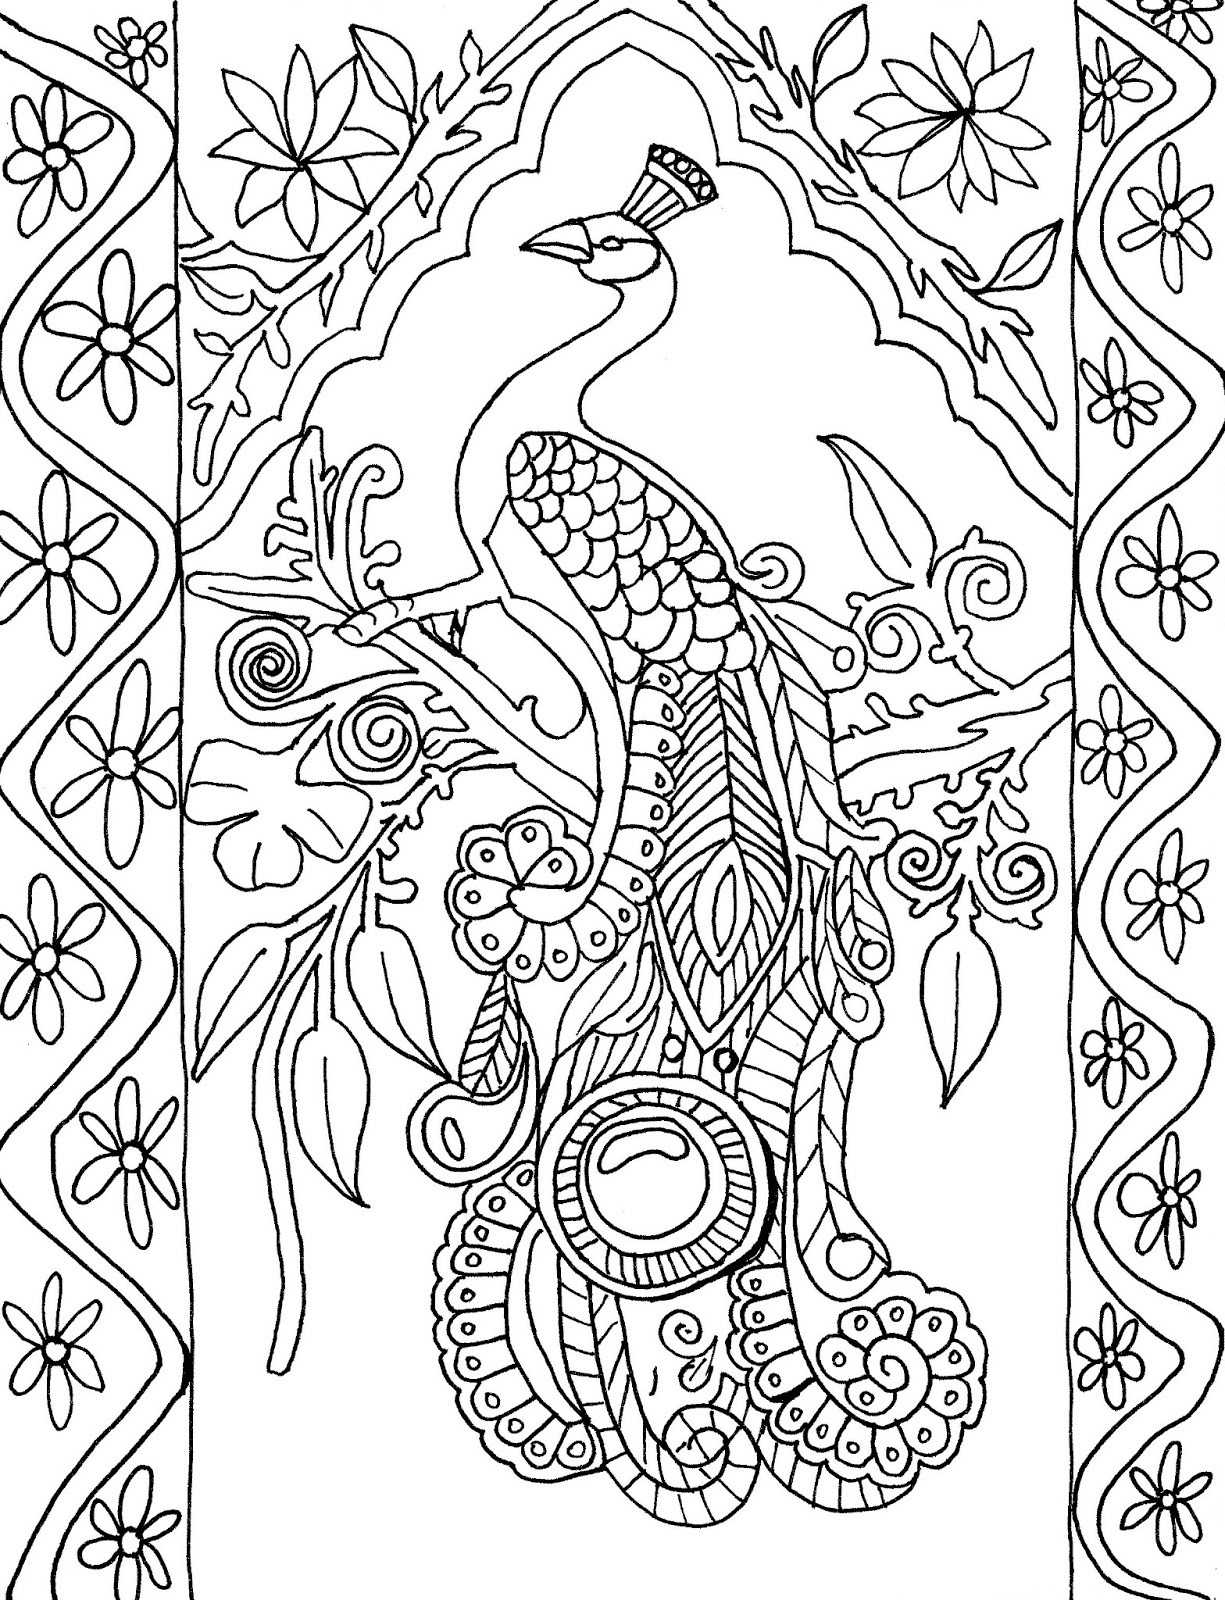 1225x1600 Fresh Superb Difficult Adult Coloring Pages With Challenging